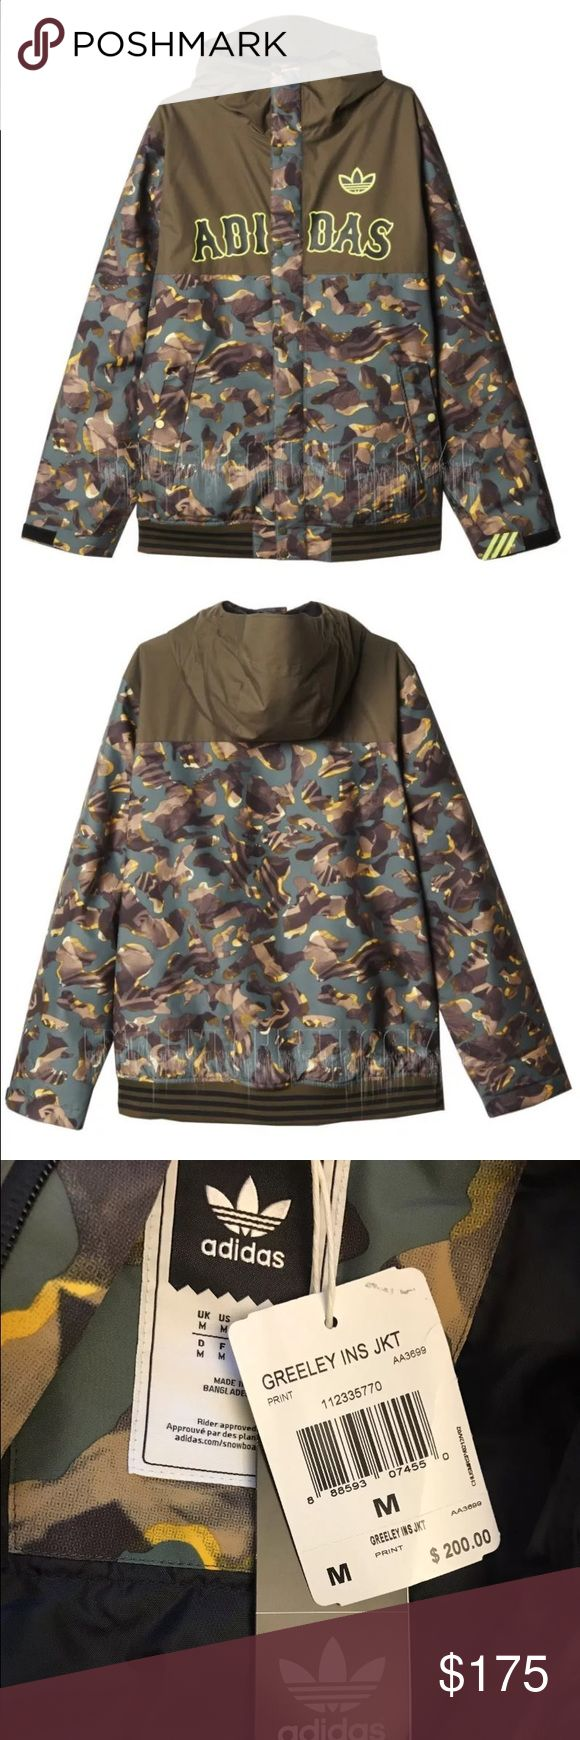 Adidas Originals Mens Greely Camo Jacket NWT New With Tags awesome Adidas Camo Jacket! Very Nice and lined in the inside can be used for regular wear or sking. Adidas Jackets & Coats Puffers